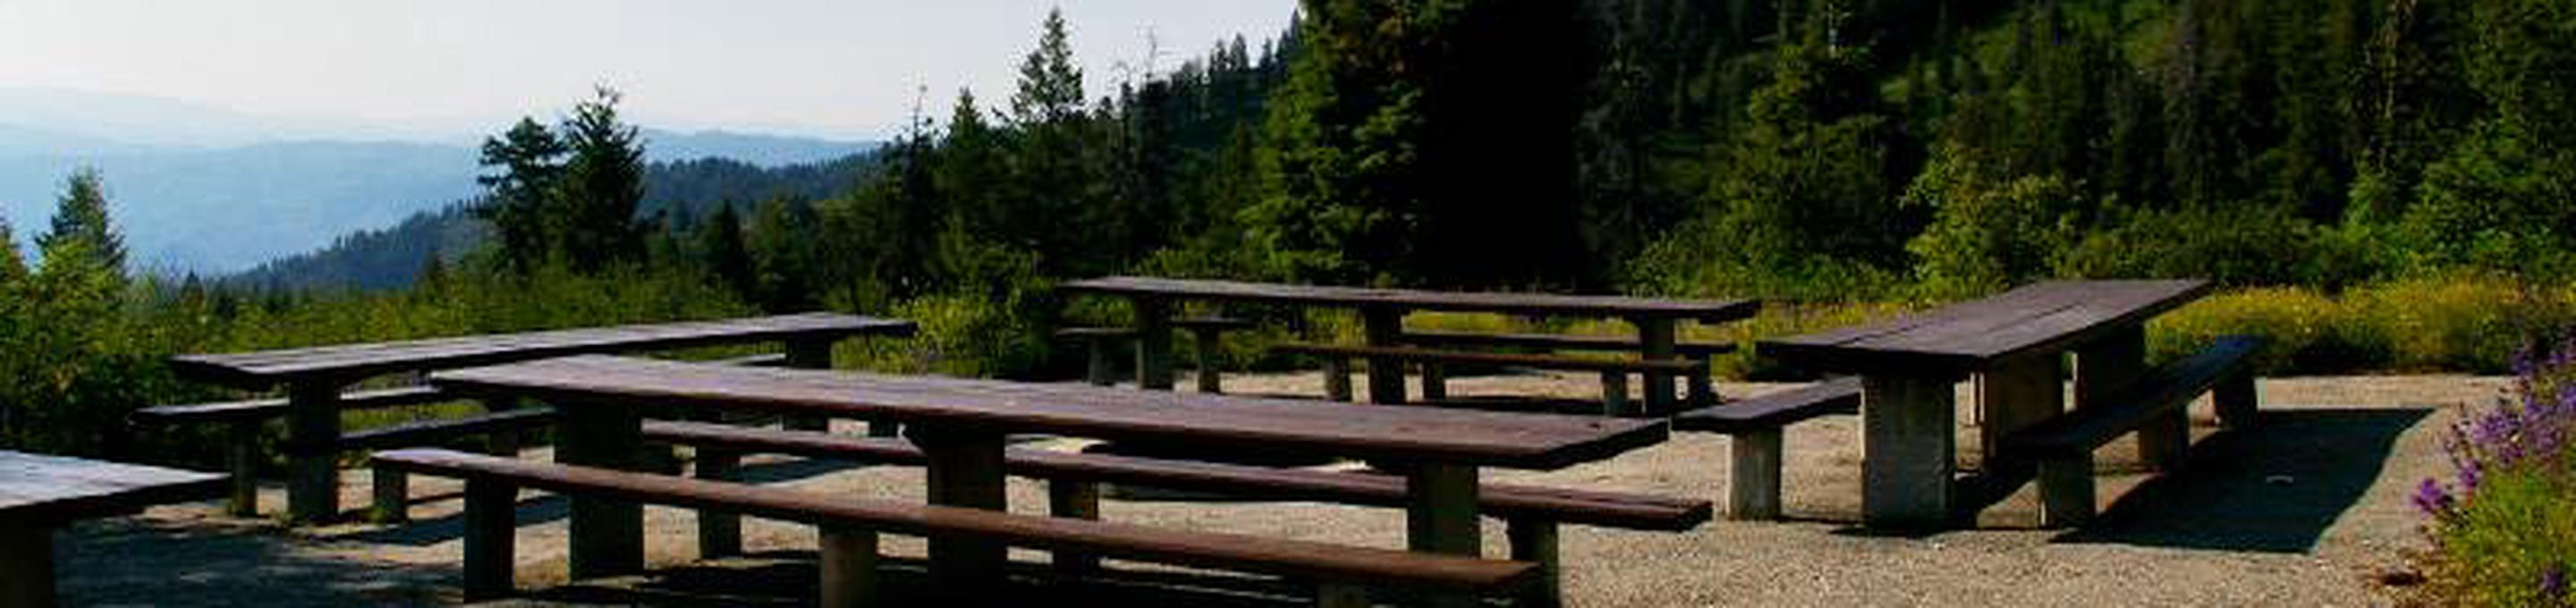 Shafer Butte campground has amazing mountain top views overlooking the valley below with single-family tent campsites, two day-use, group picnic areas, and all sites are equipped with picnic tables and campfire rings, and a few have tent pads.Shafer Butte Campground